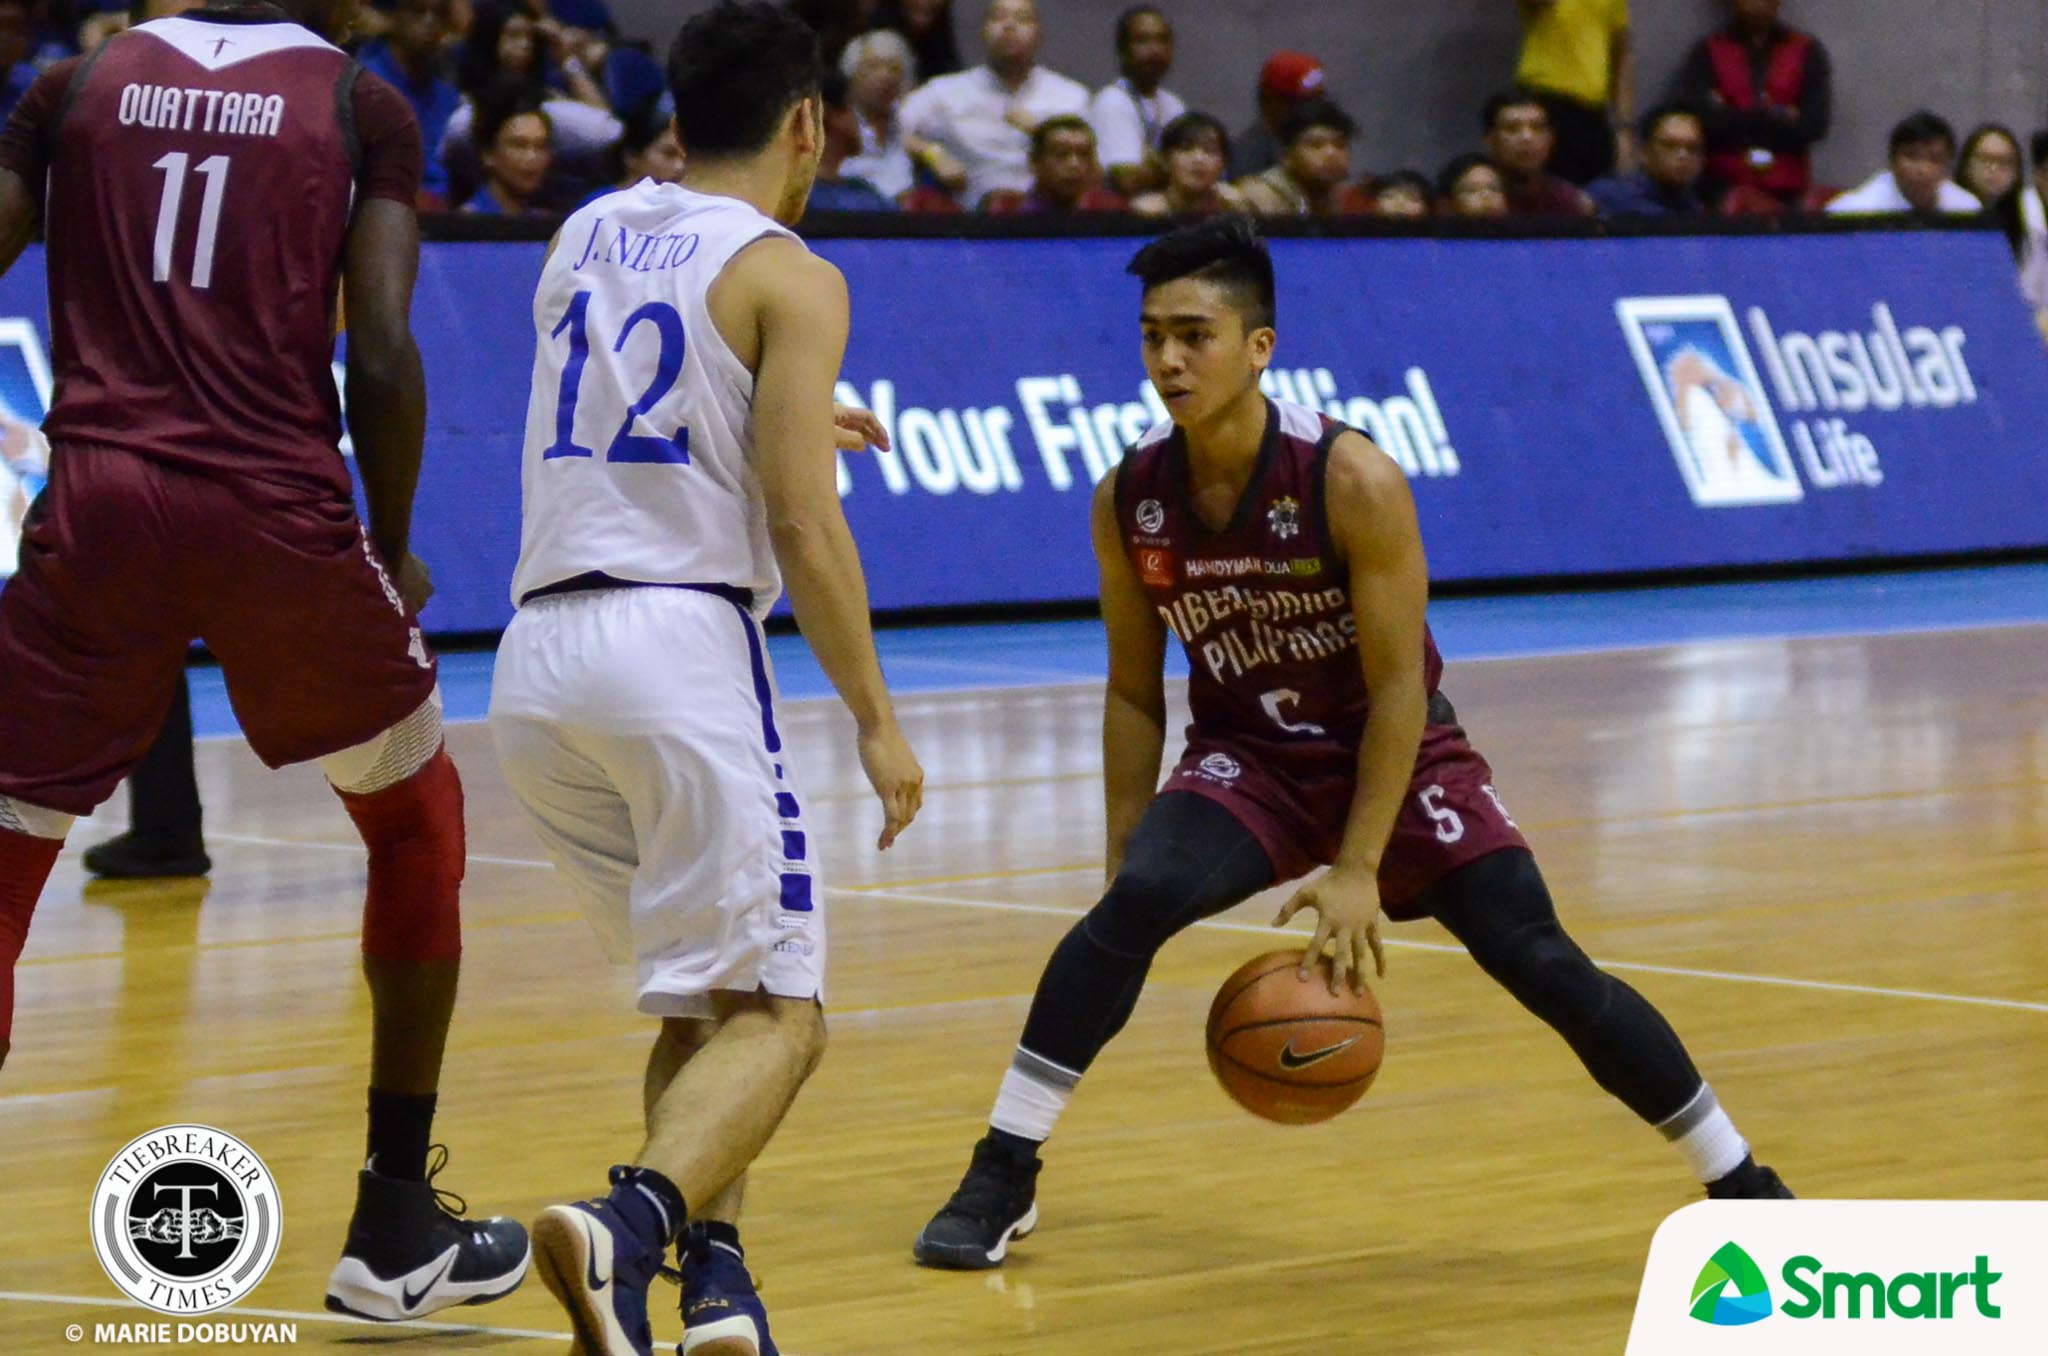 UAAP-80-Mens-Basketball-ADMU-UP-Dario-4211 UP interested in Jr. Maroons seniors, but Perasol says they have to compete Basketball News UAAP UP  - philippine sports news